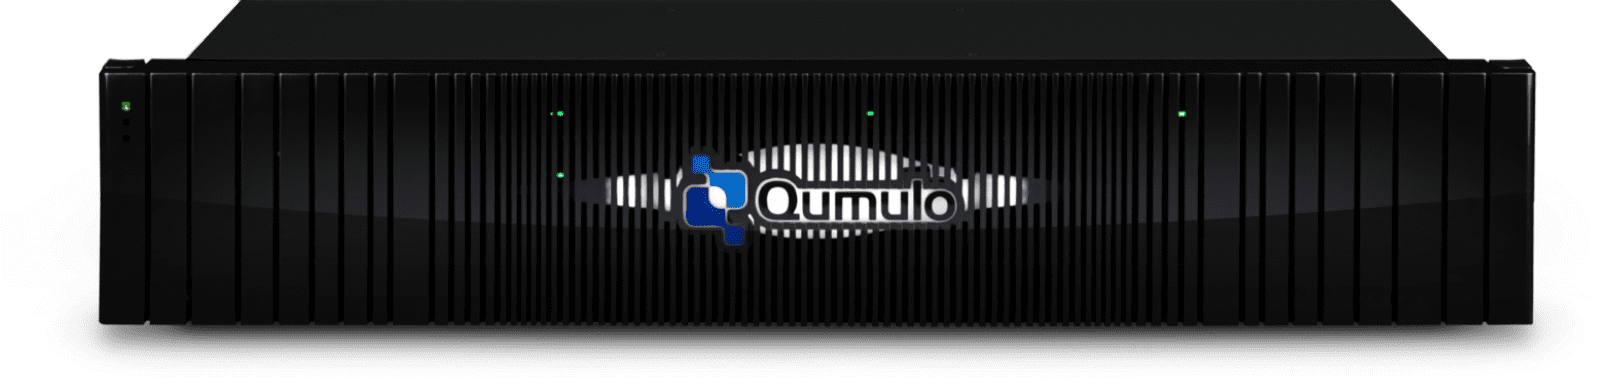 all-flash storage solutions from Qumulo, for high performance computing and video editing